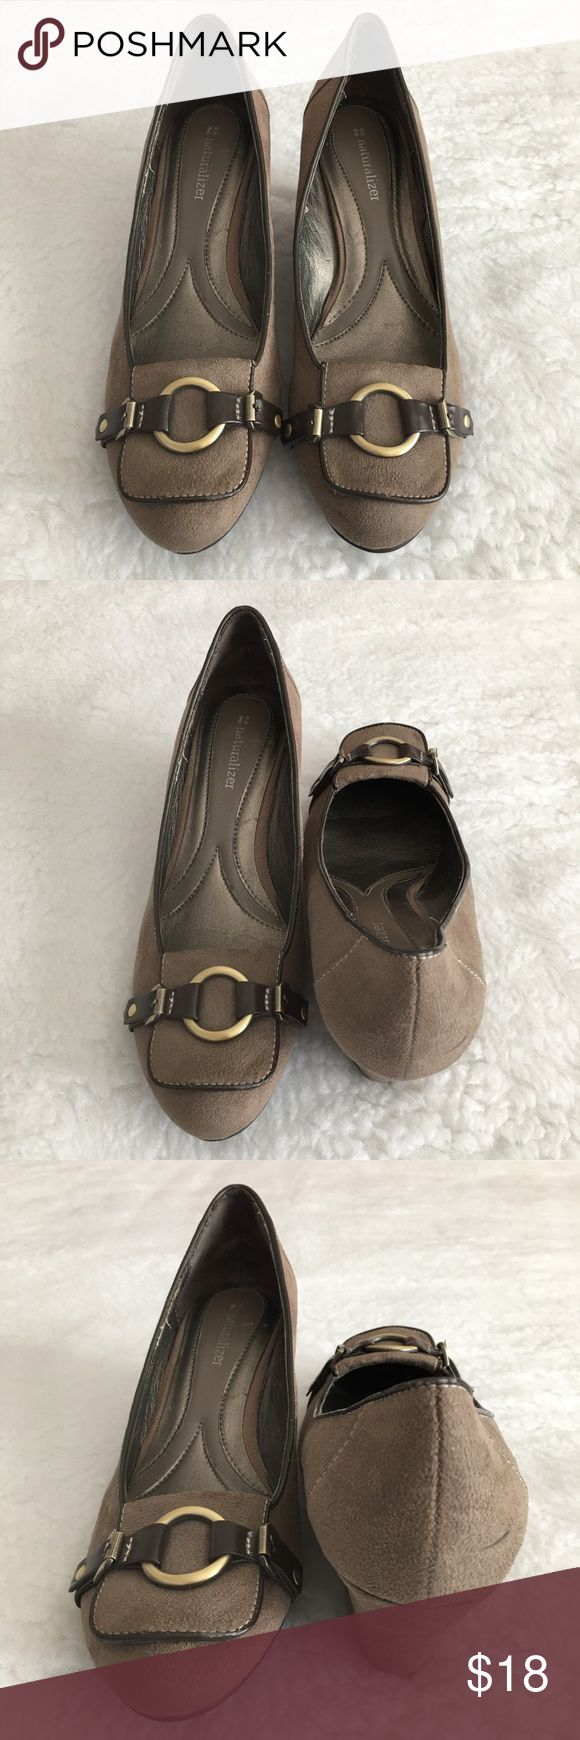 "Naturalizer Beige Wedge Pump size 8M Only used once, in very good condition, very comfortable Pump for career or casual wear. It does have a scuff on the left inner ankle but it's hardly noticeable, size 8M with heel height of 2 3/4"". Naturalizer Shoes Wedges"